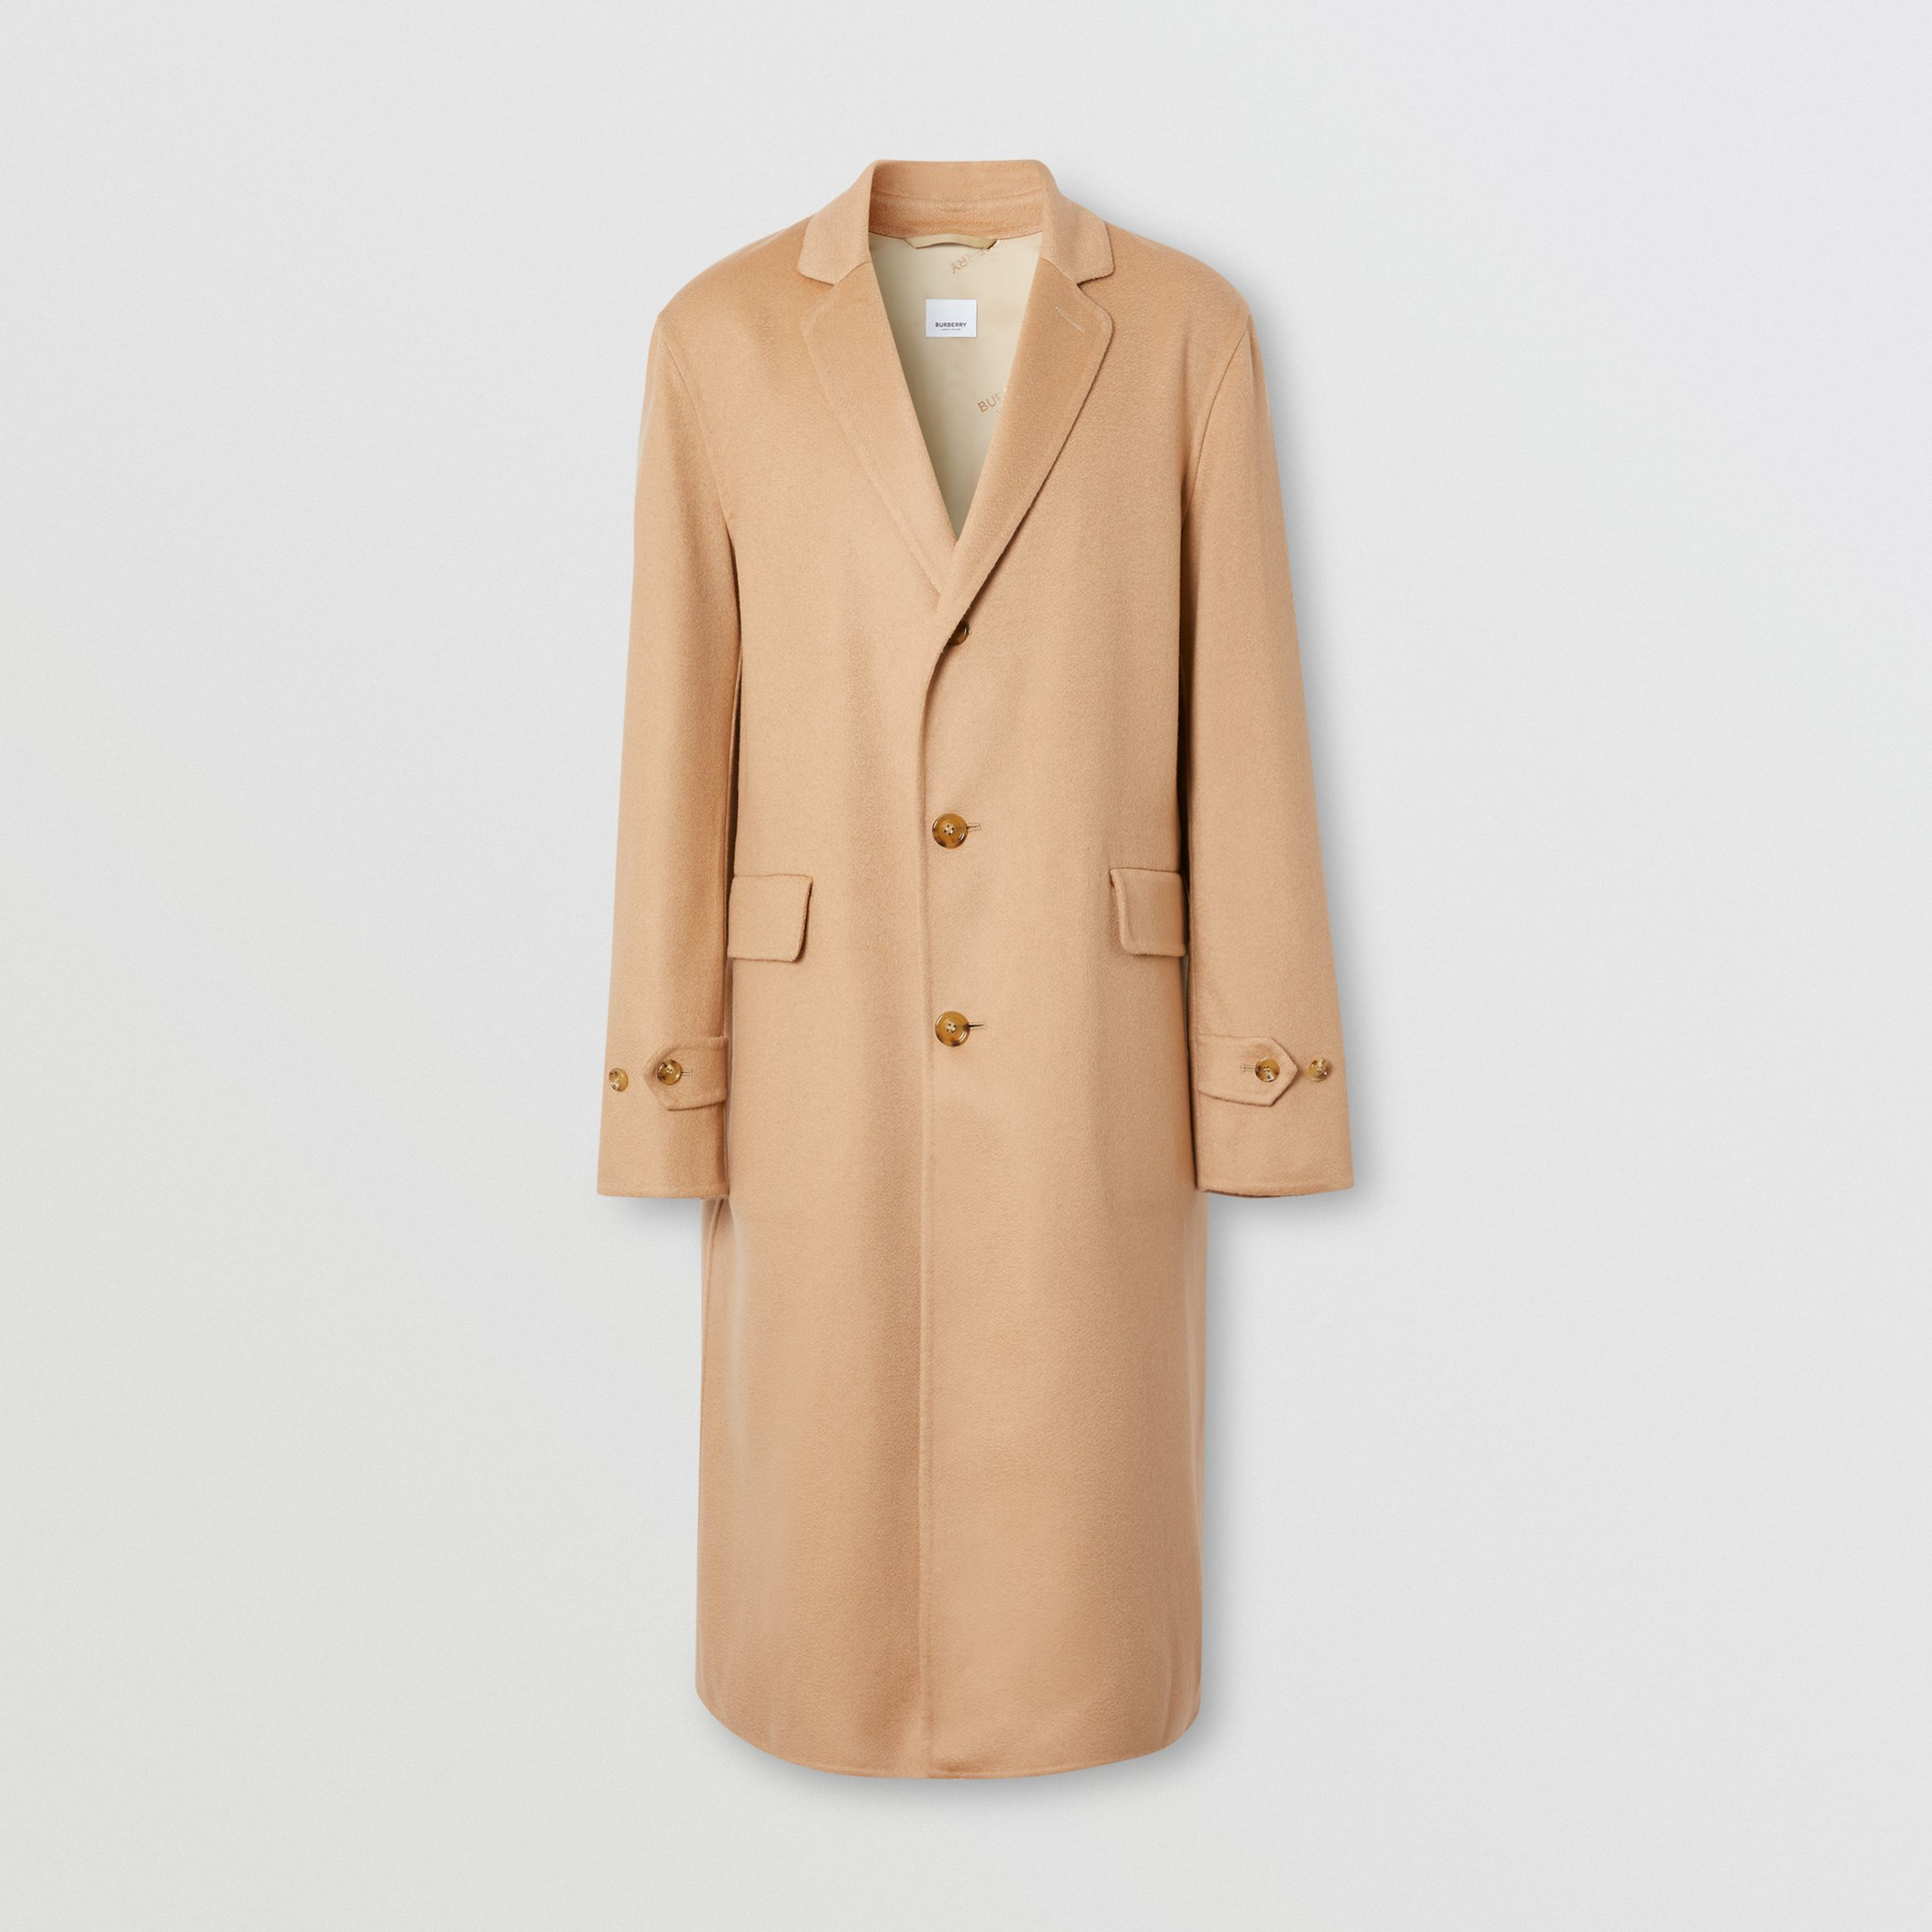 Double-faced Regenerated Cashmere Lab Coat in Camel - Men | Burberry - 4